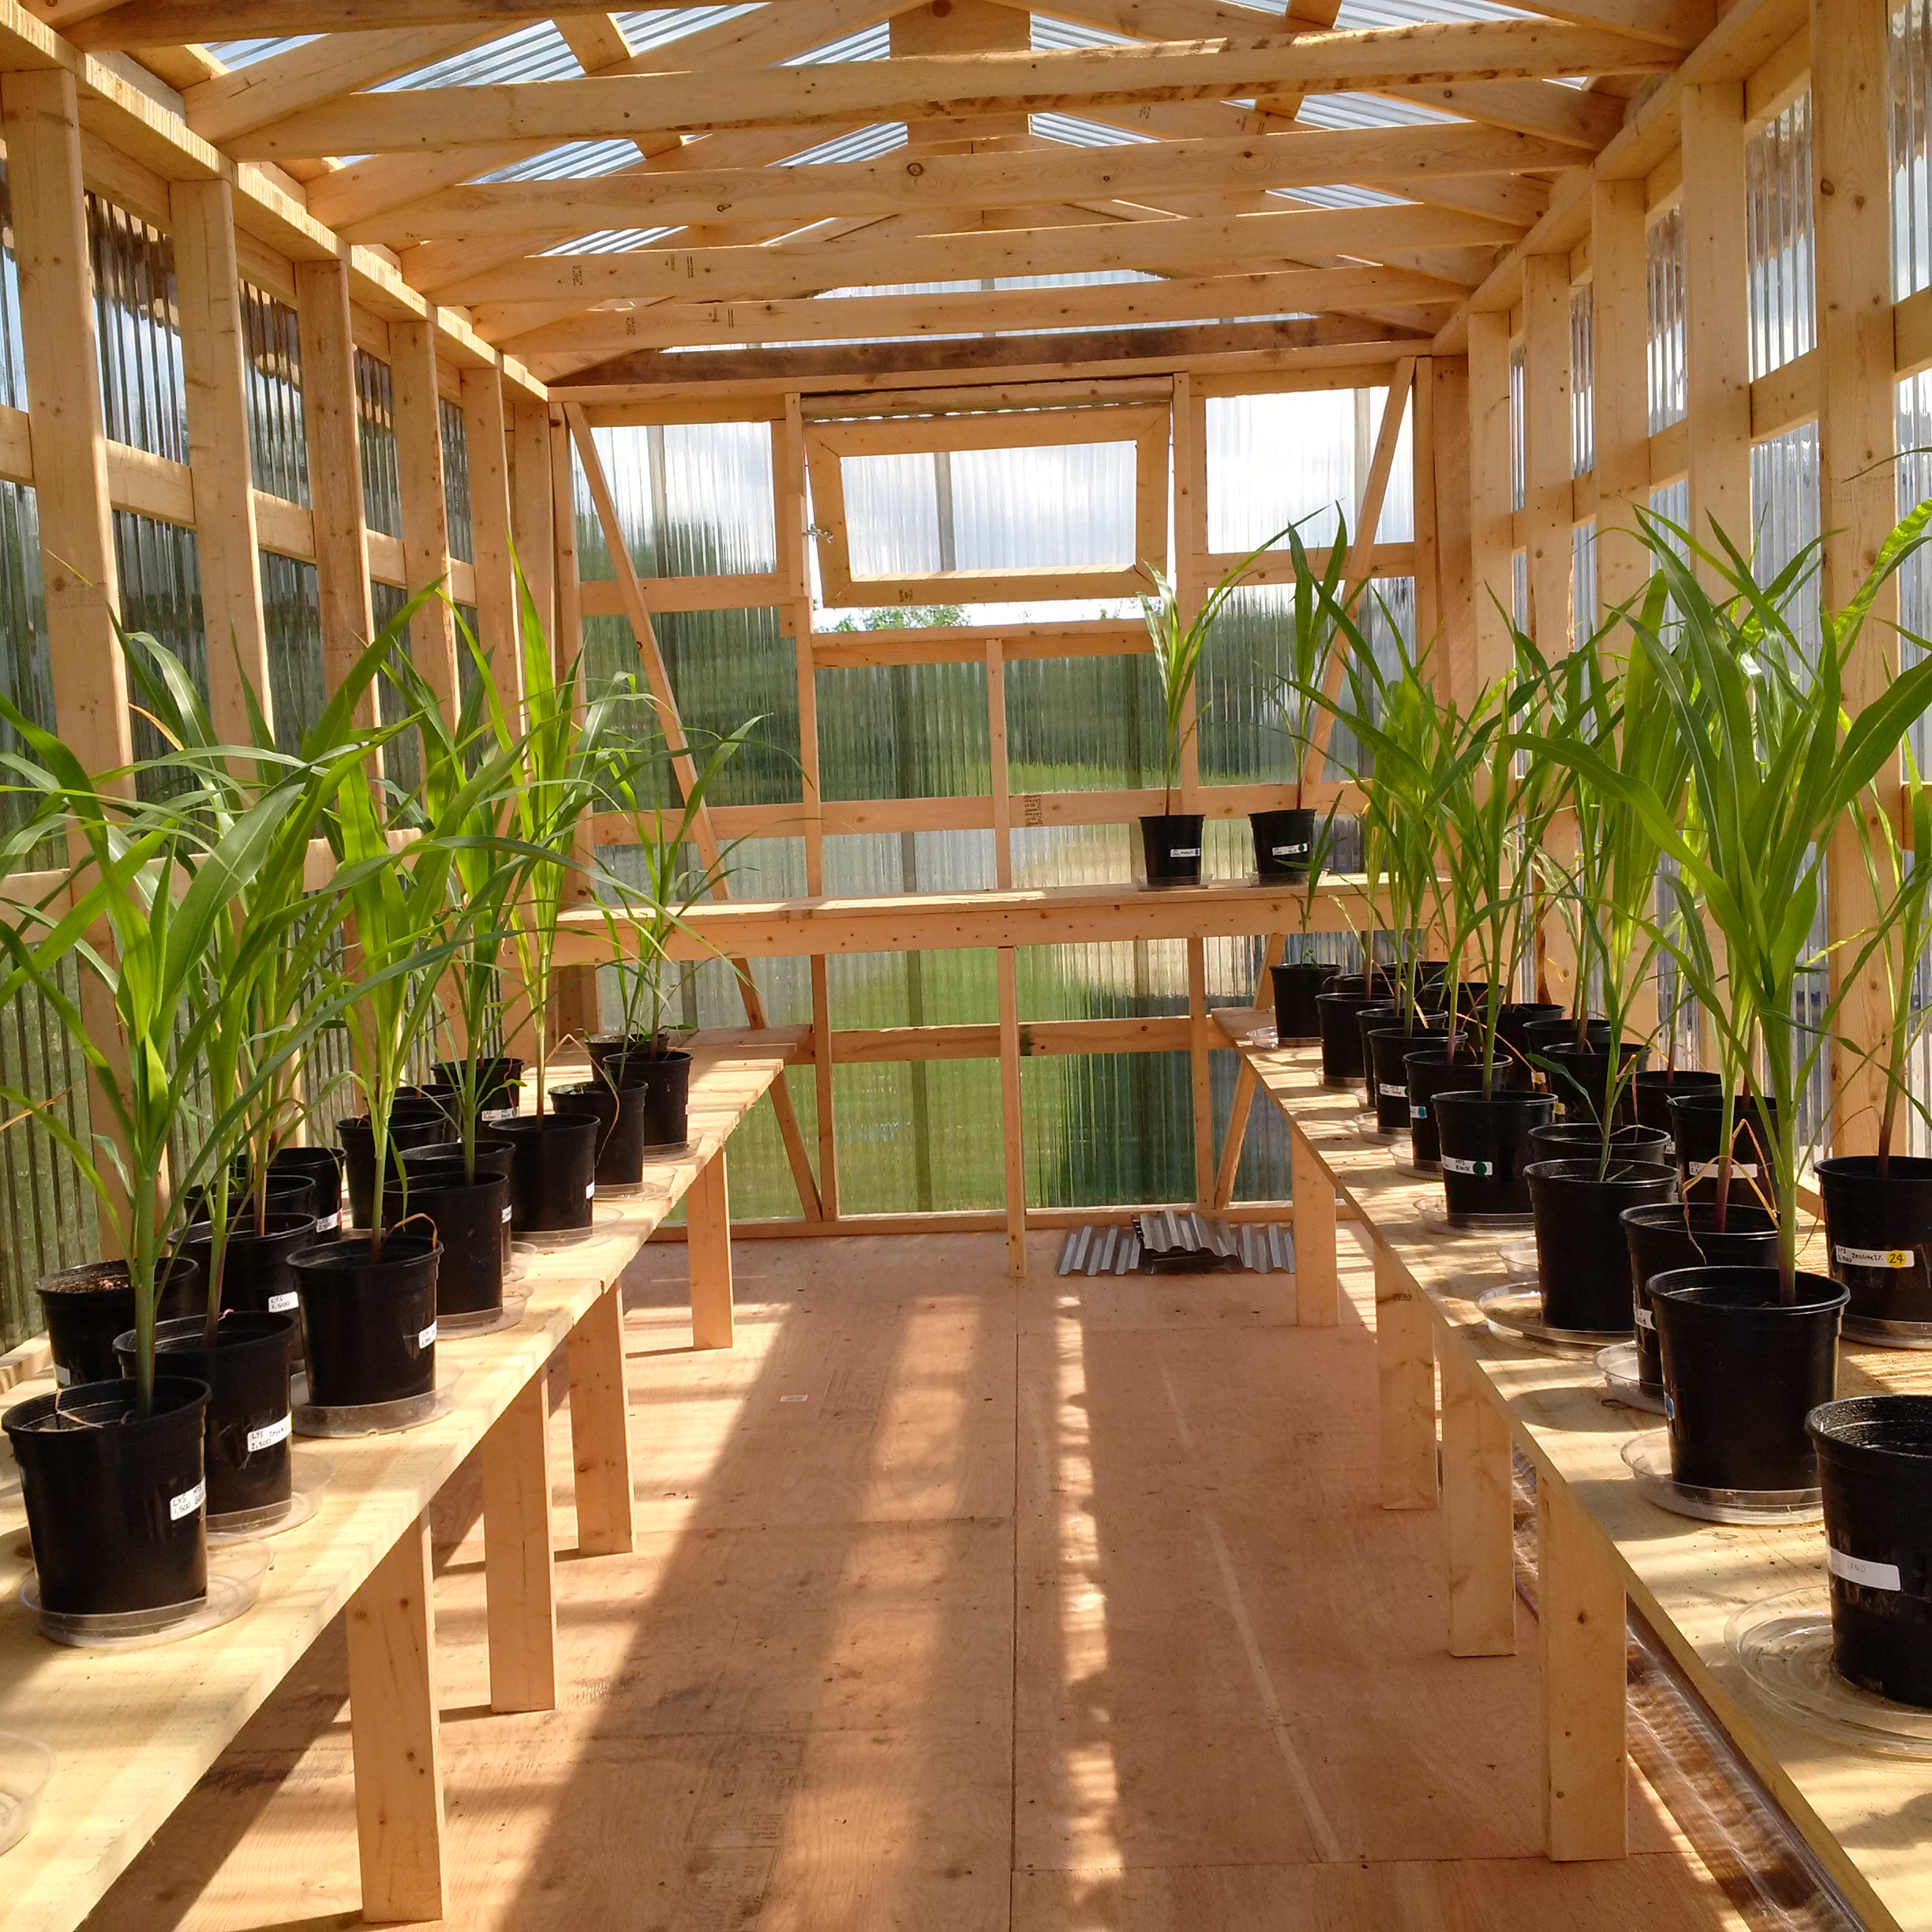 A trial using biosolids fertilizer and other fertilizer products